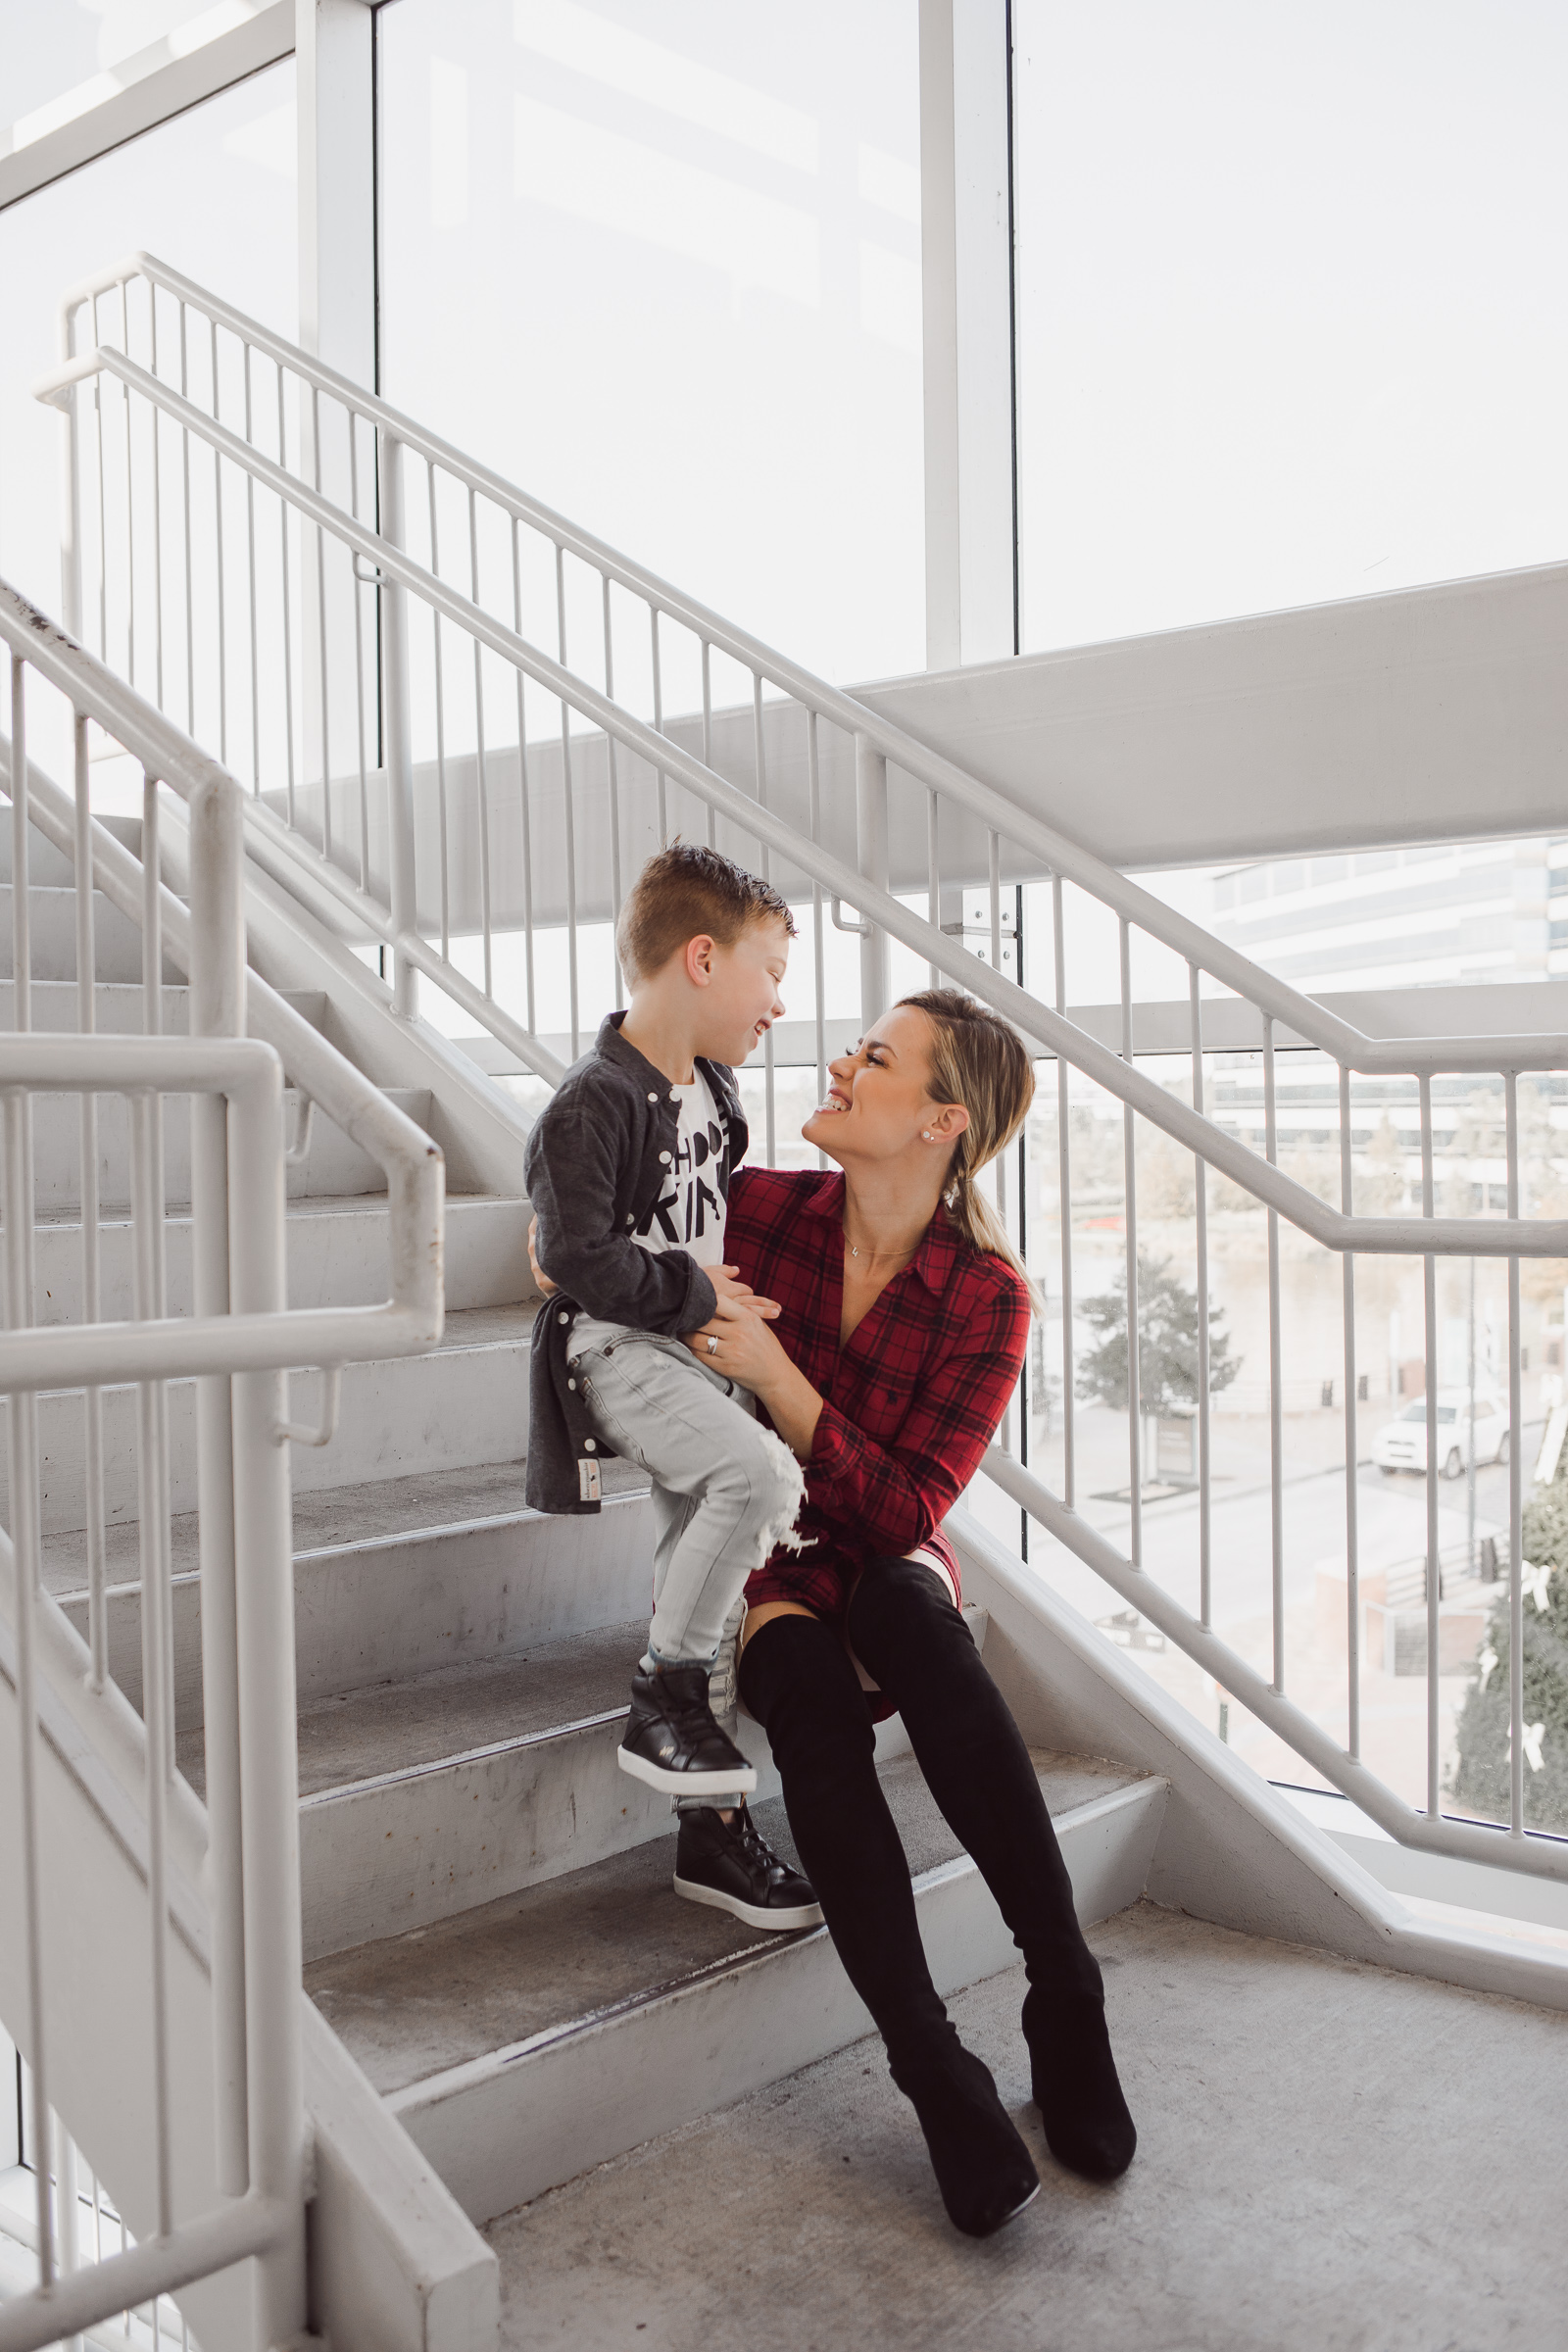 Houston lifestyle blogger Uptown with Elly Brown shares how and why it's important to teach Kindness to our kids in today's world.